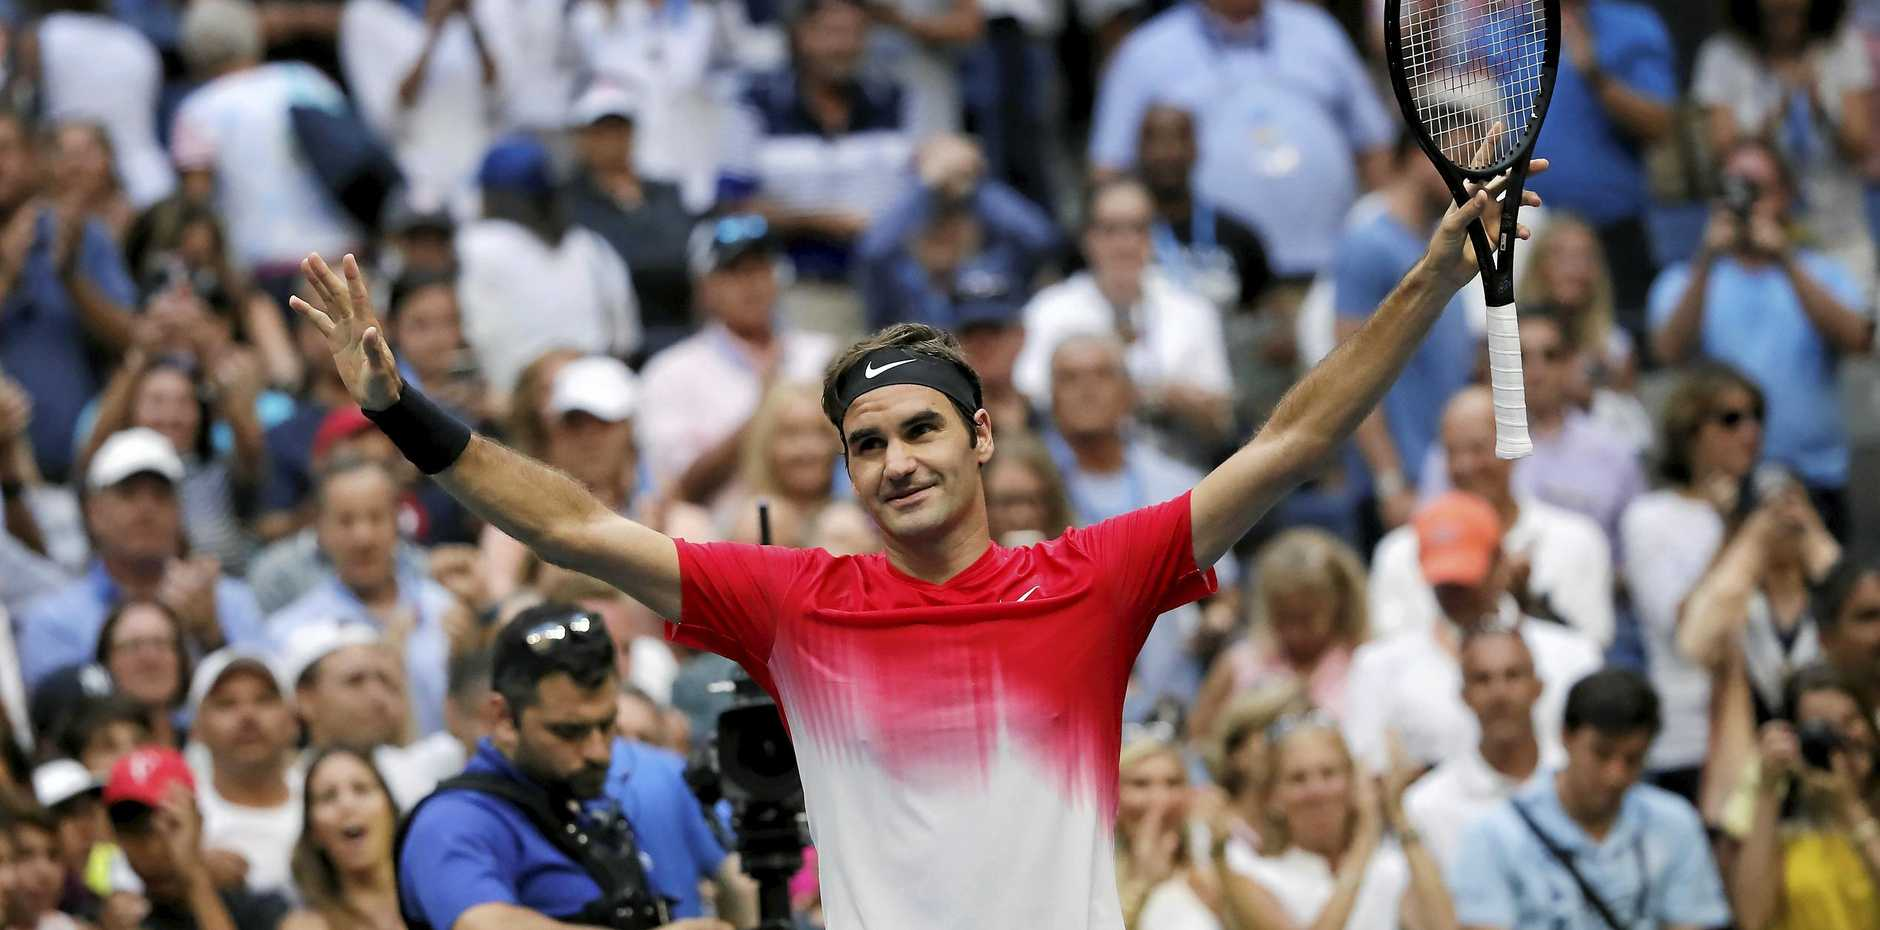 Roger Federer, of Switzerland, reacts after defeating Mikhail Youzhny, of Russia, during the second round of the U.S. Open